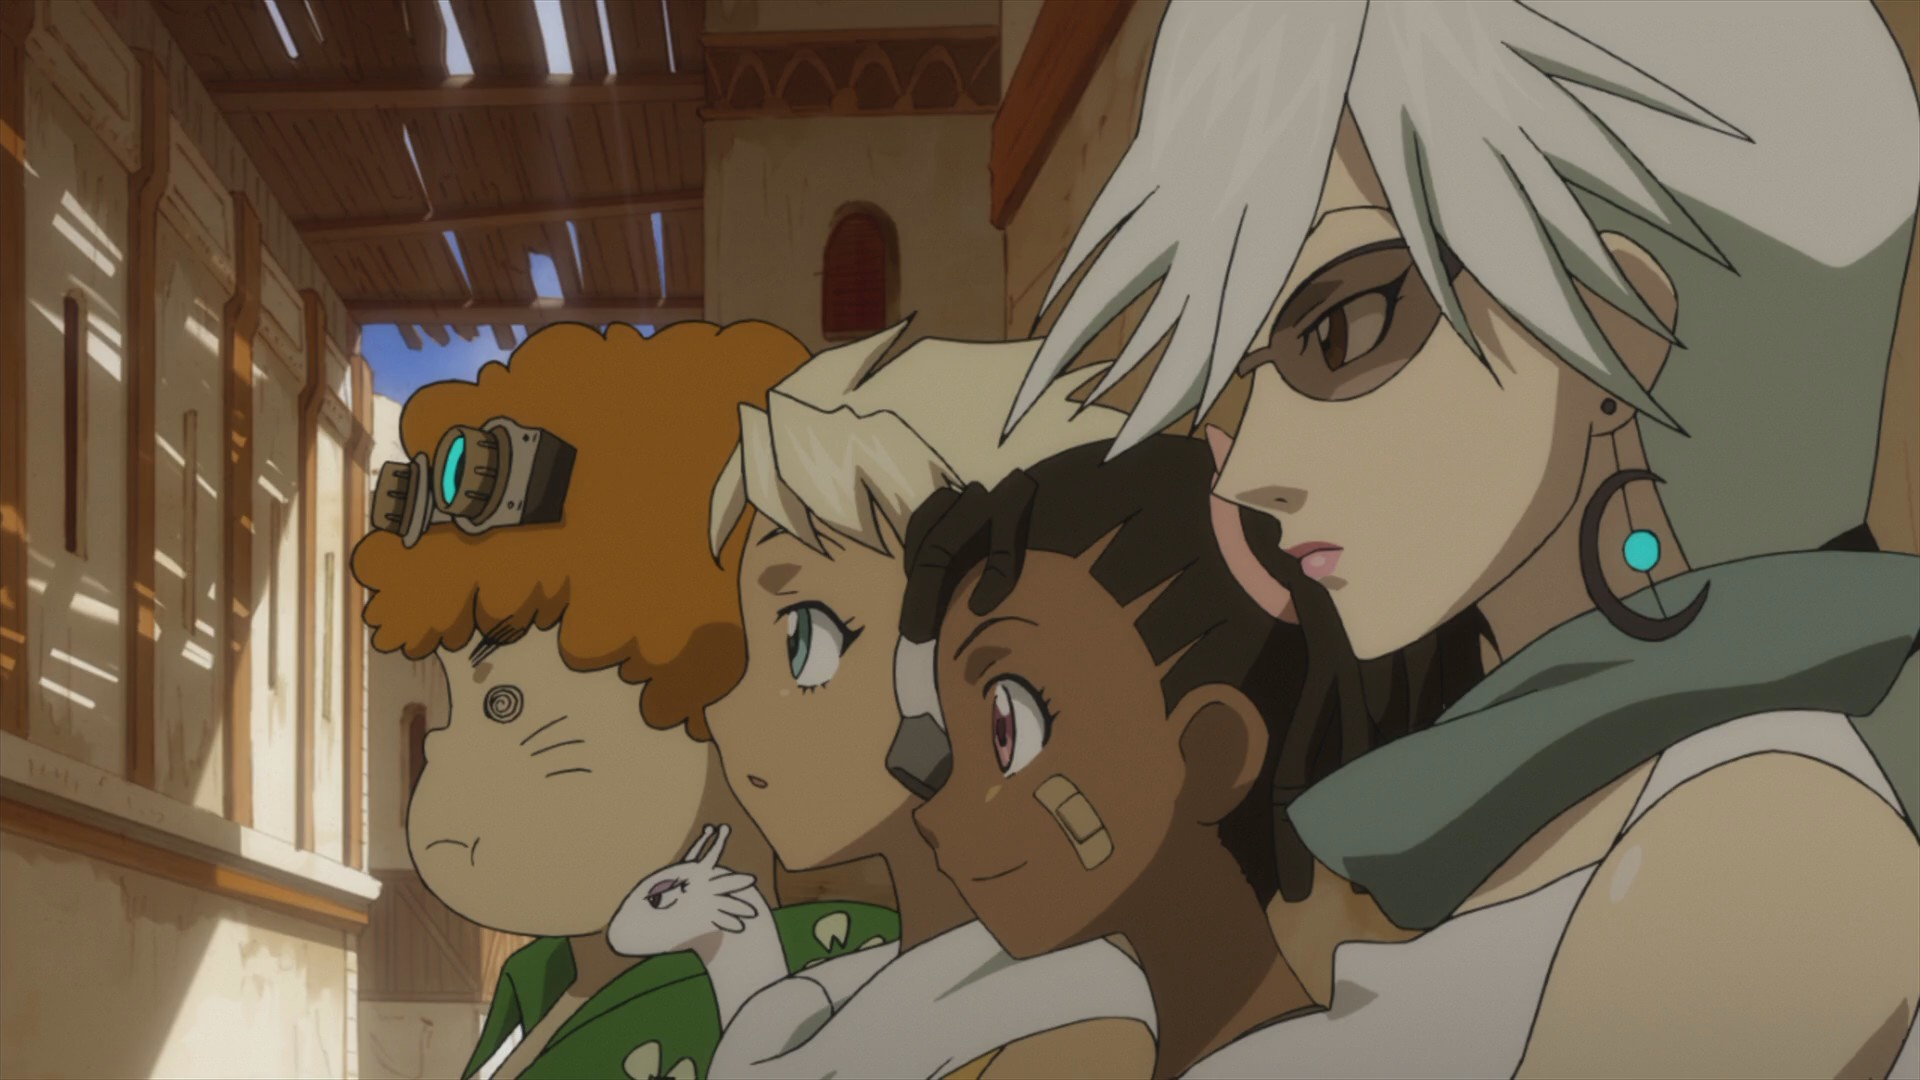 Four of Dan's allies: Bel, an overweight boy with goggles; Sela, a young athletic girl; Miyuki, a young girl with a band-aid on her face; and Haruka, a woman with white hair and sunglasses.